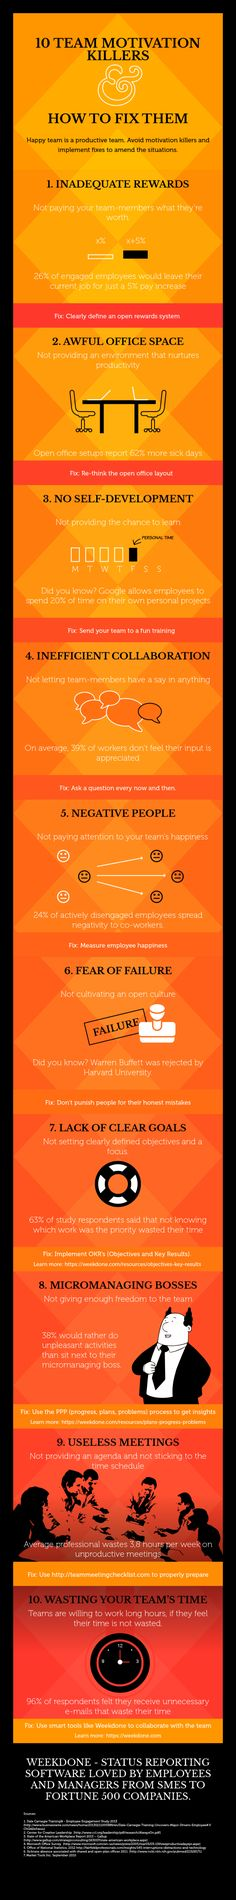 Are You a Team Motivation Killer? [INFOGRAPHIC]